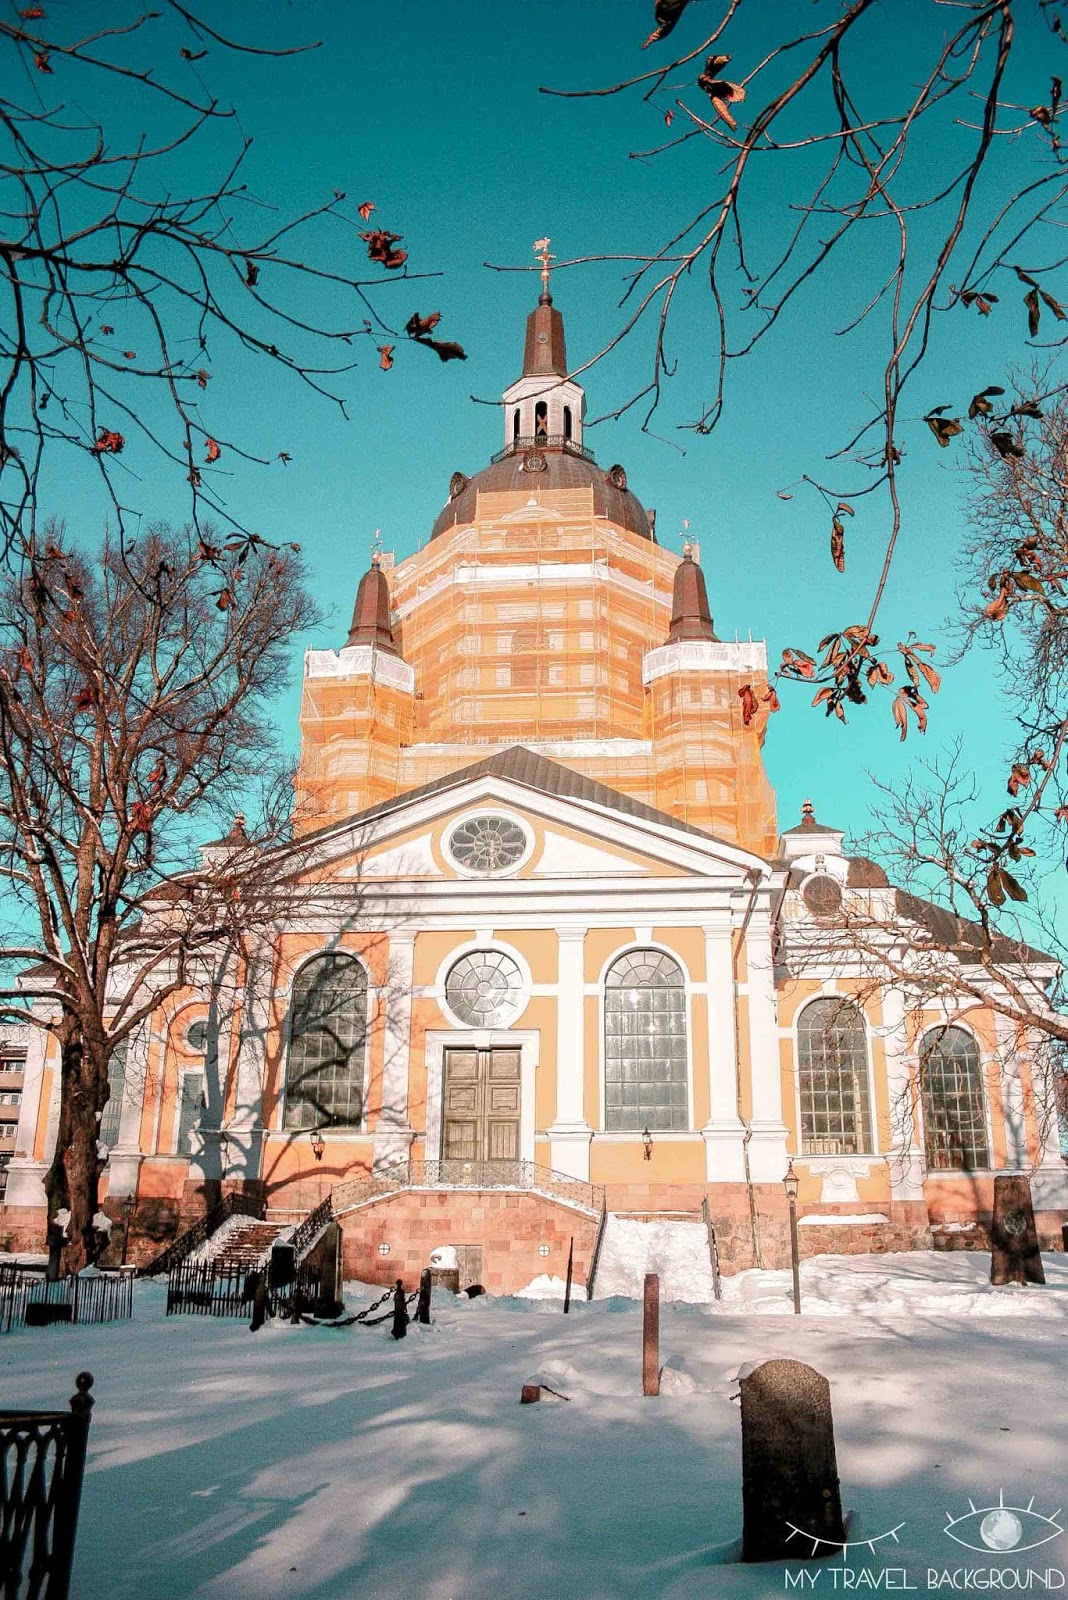 My Travel Background : Visiter Stockholm, mes immanquables - Eglise Katarina